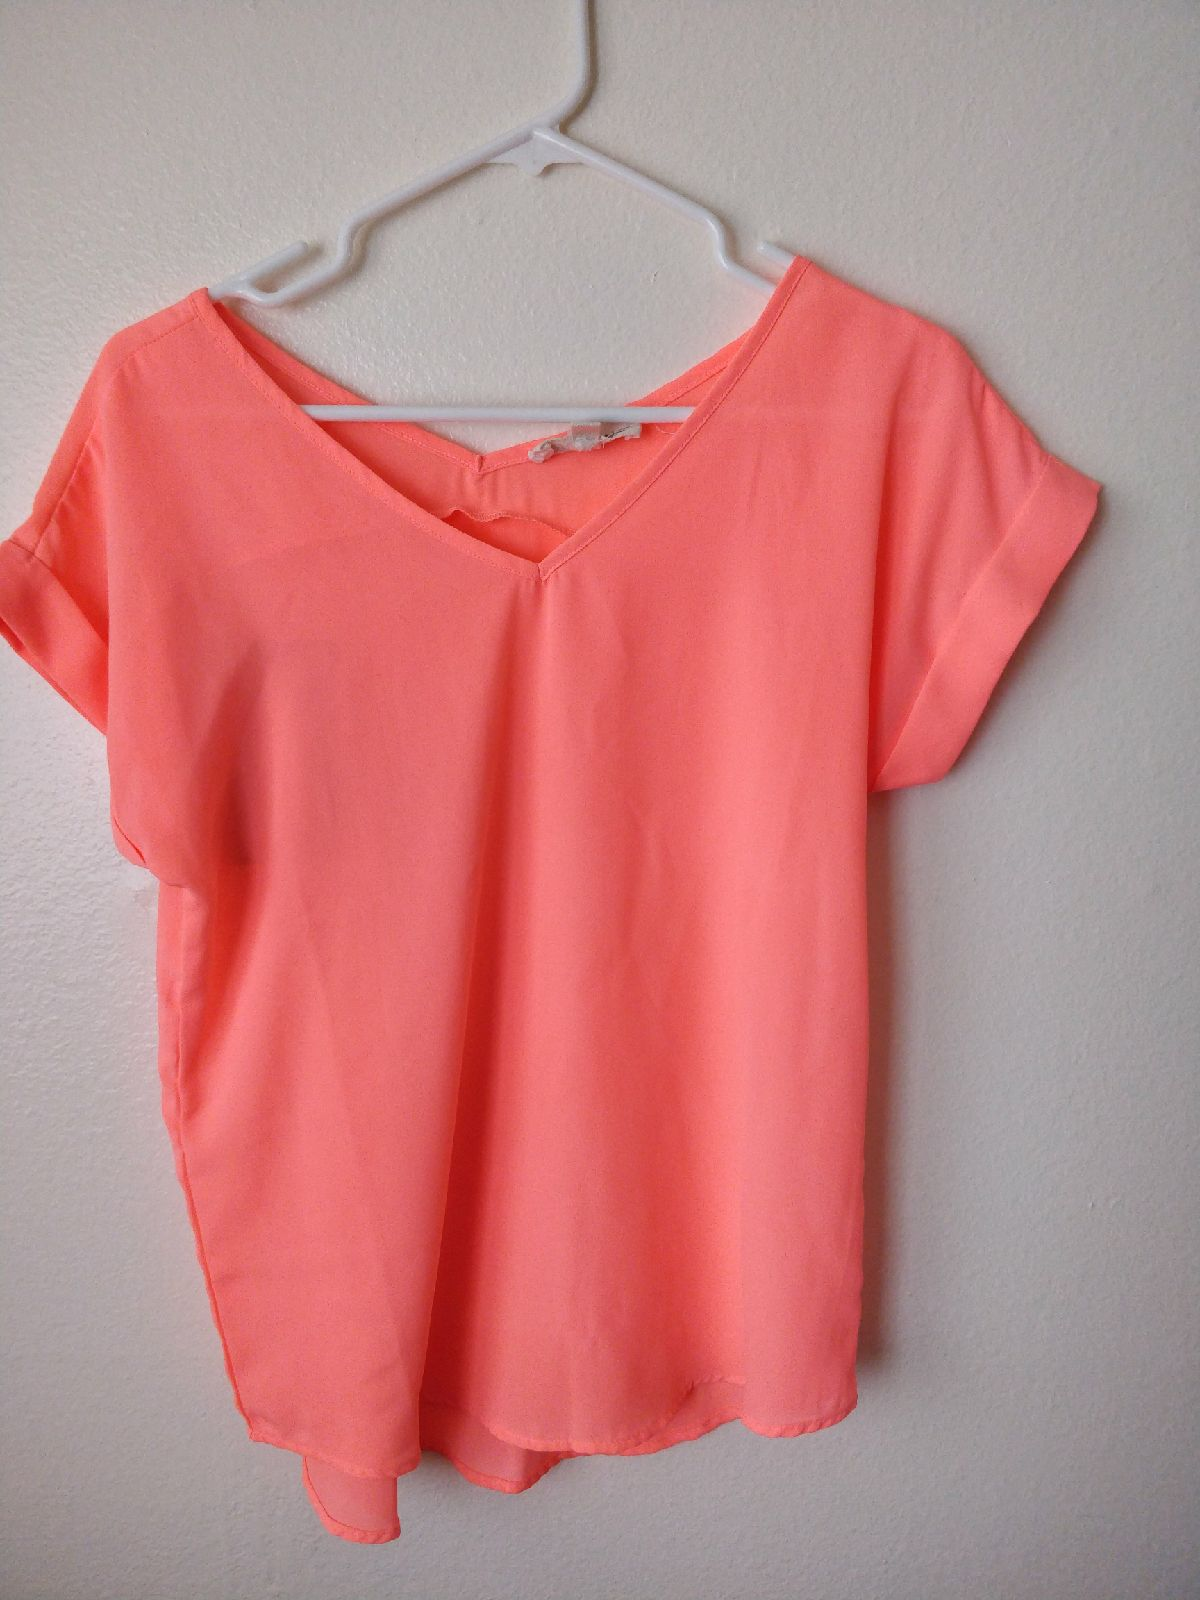 Neon pink blouse Top